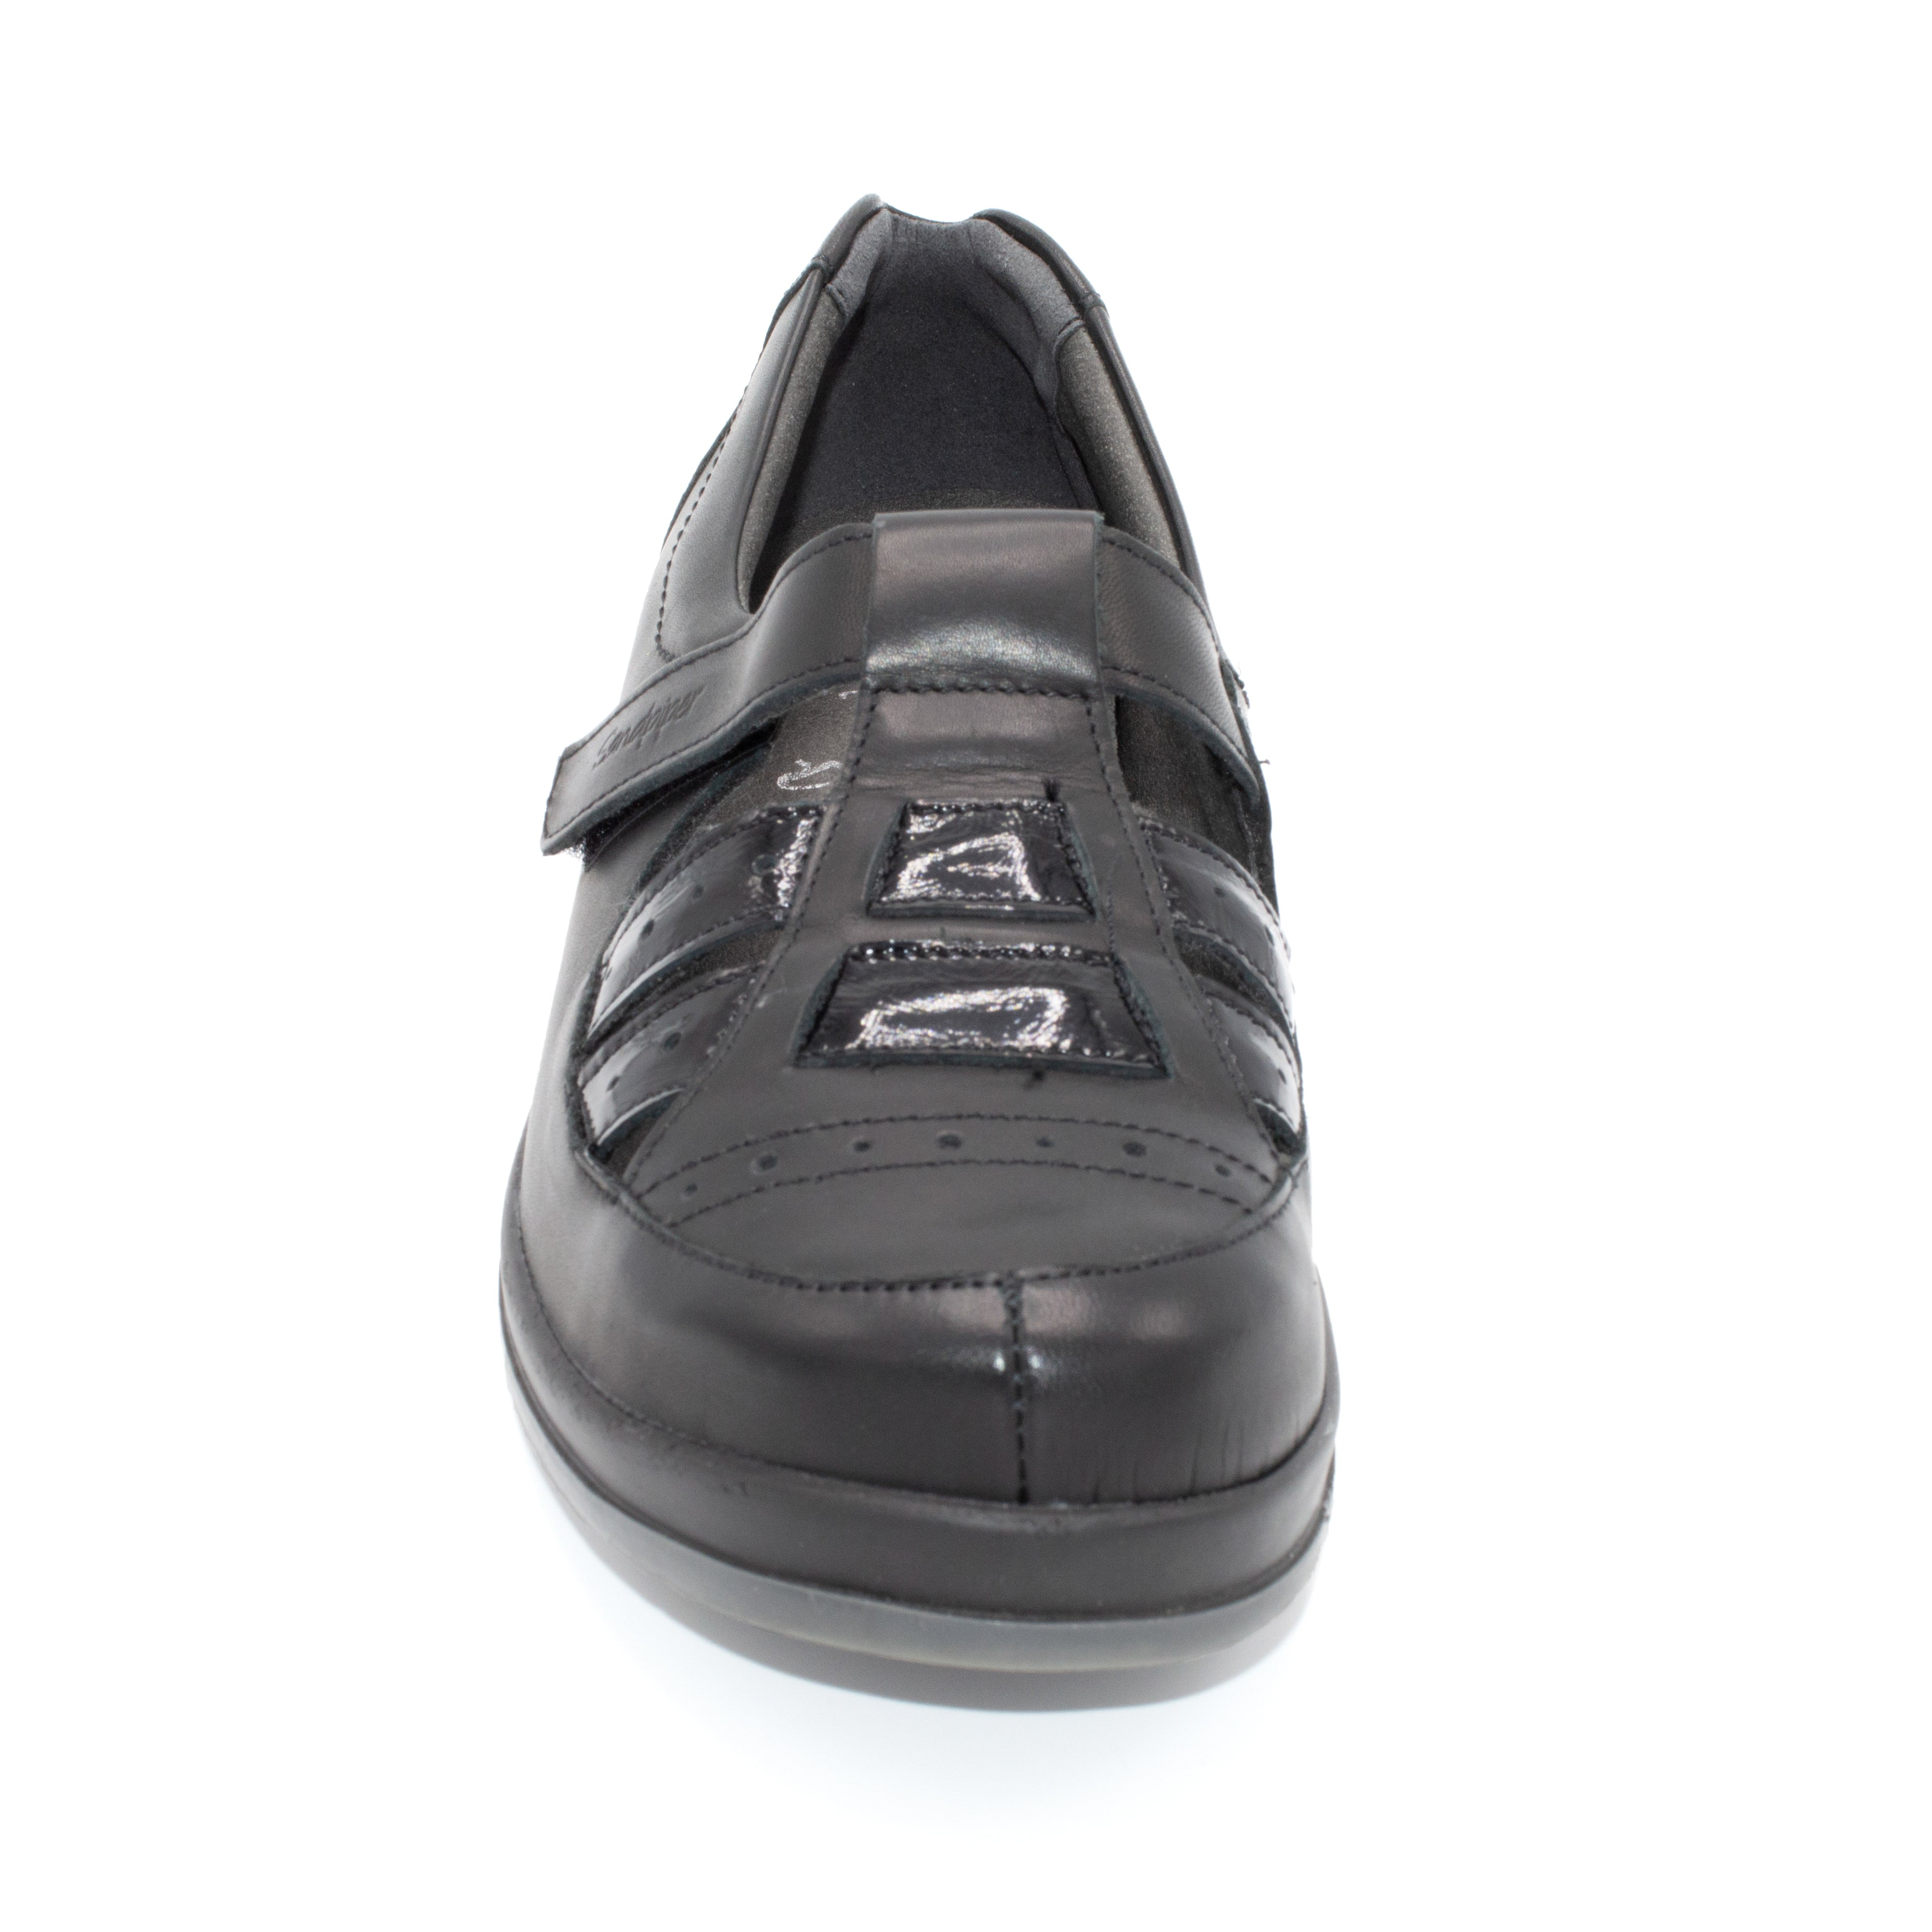 Black Ladies Velcro Shoe For Swollen Feet